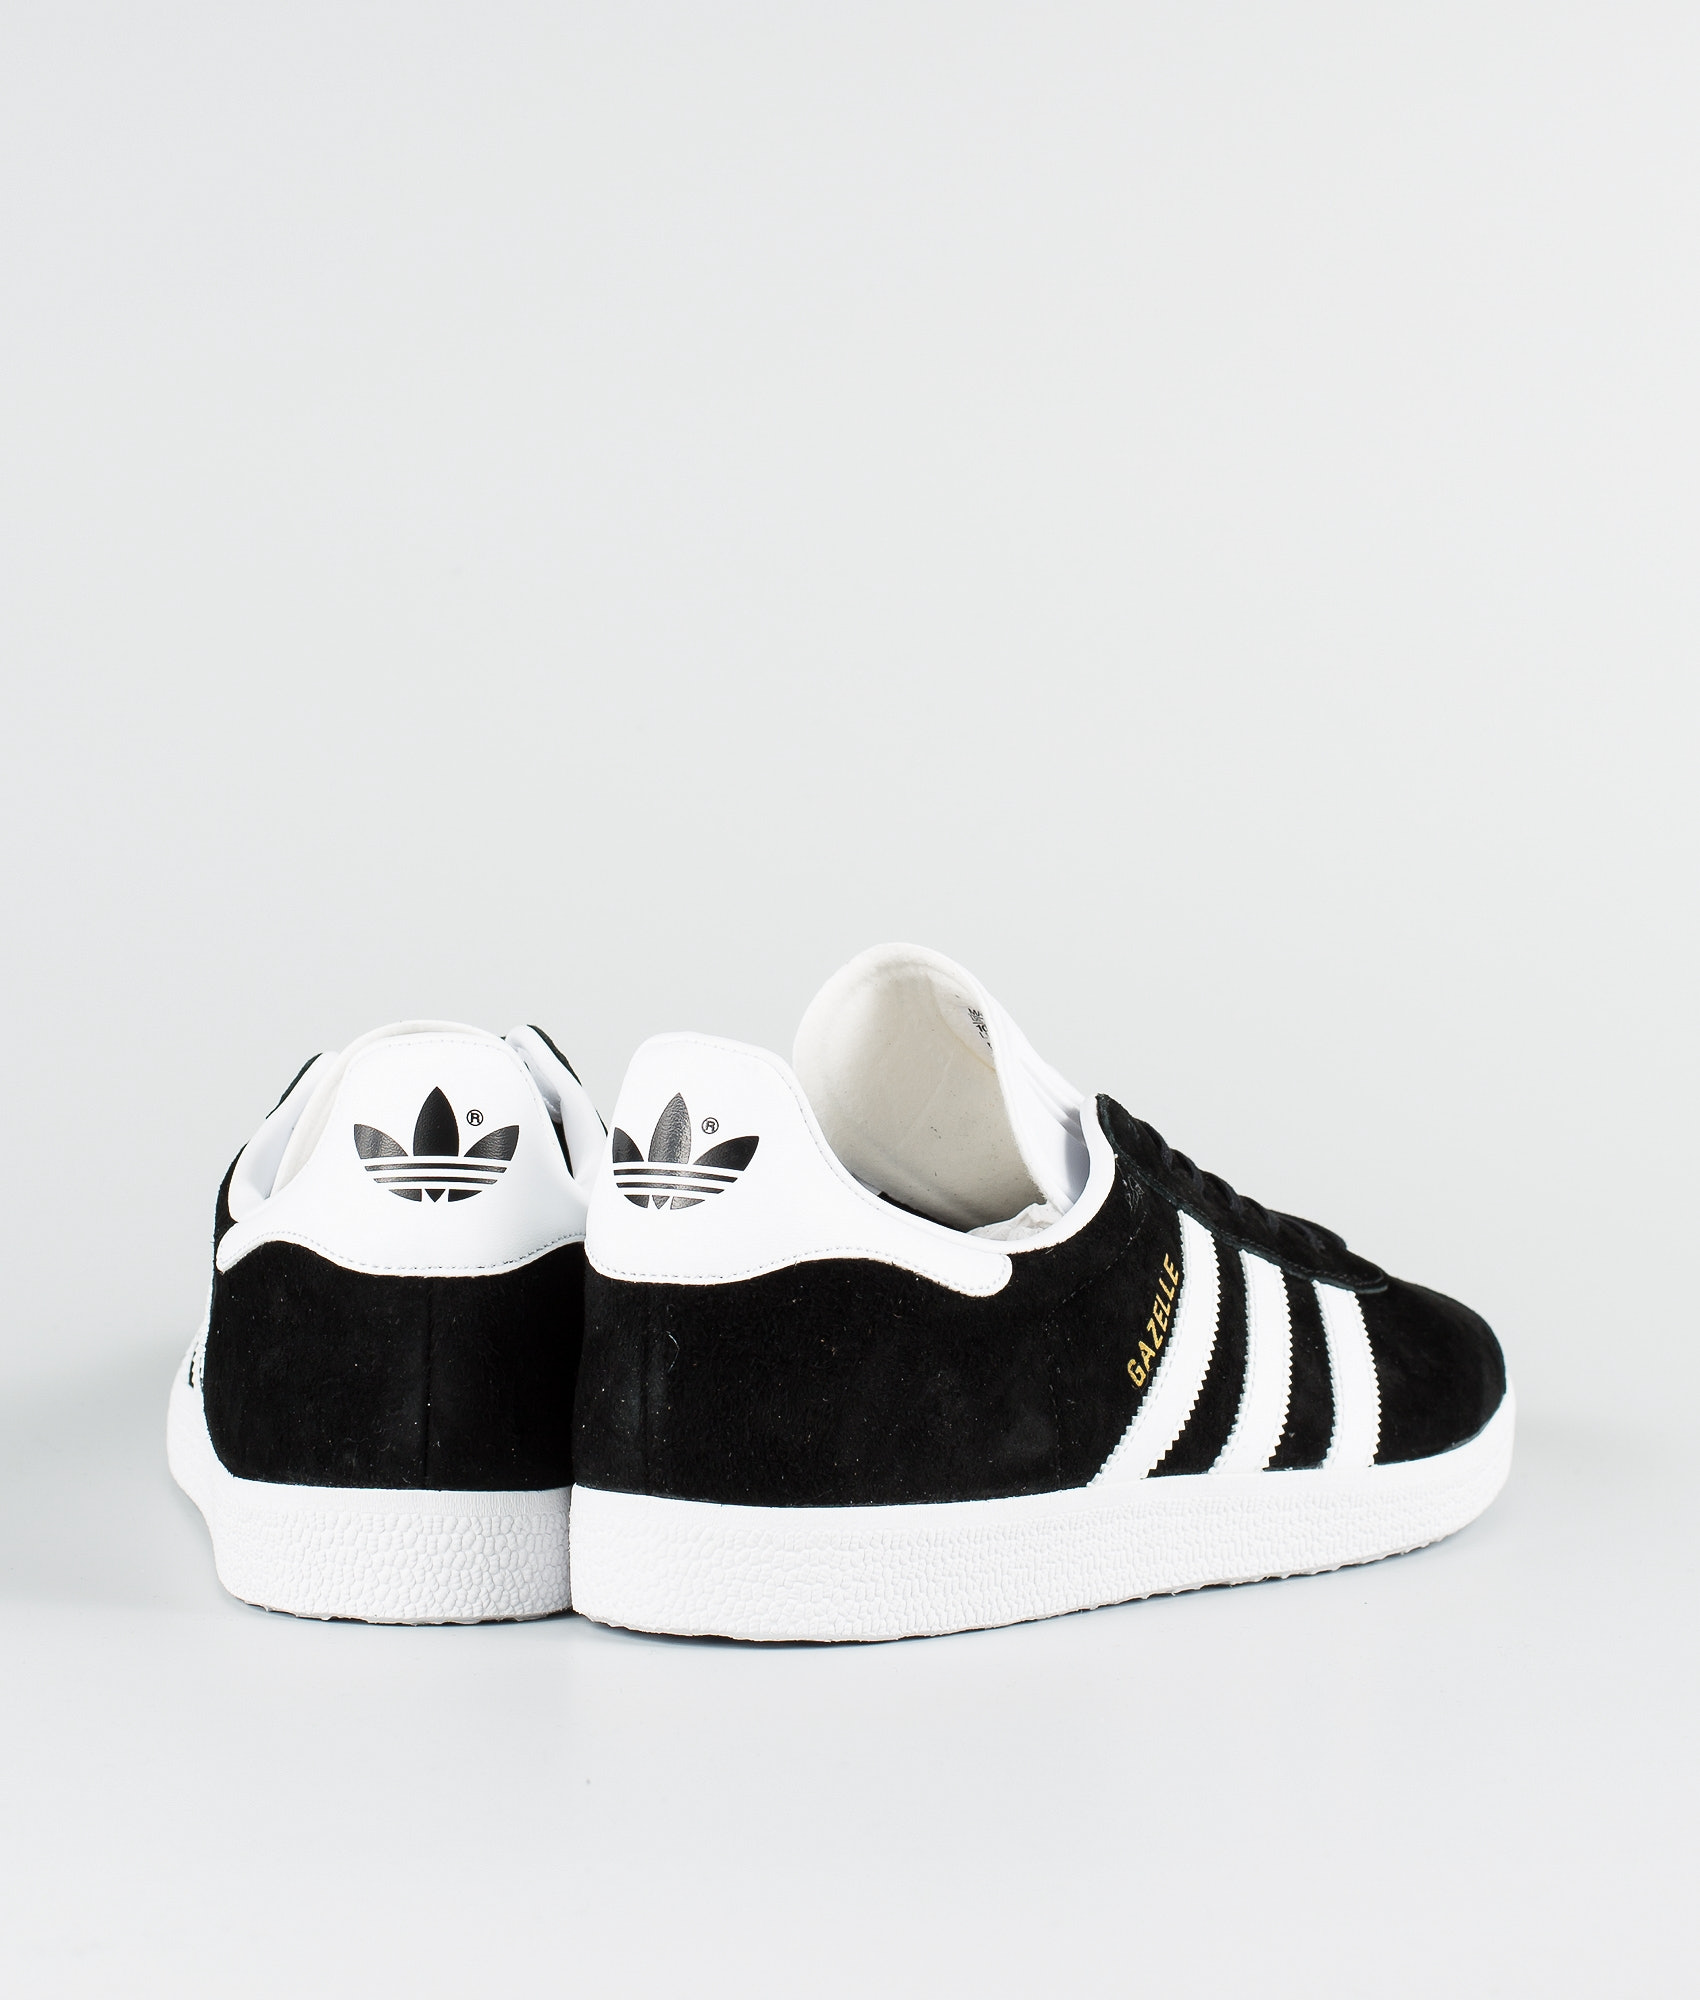 official photos 6711d a056a Adidas Originals Gazelle Shoes